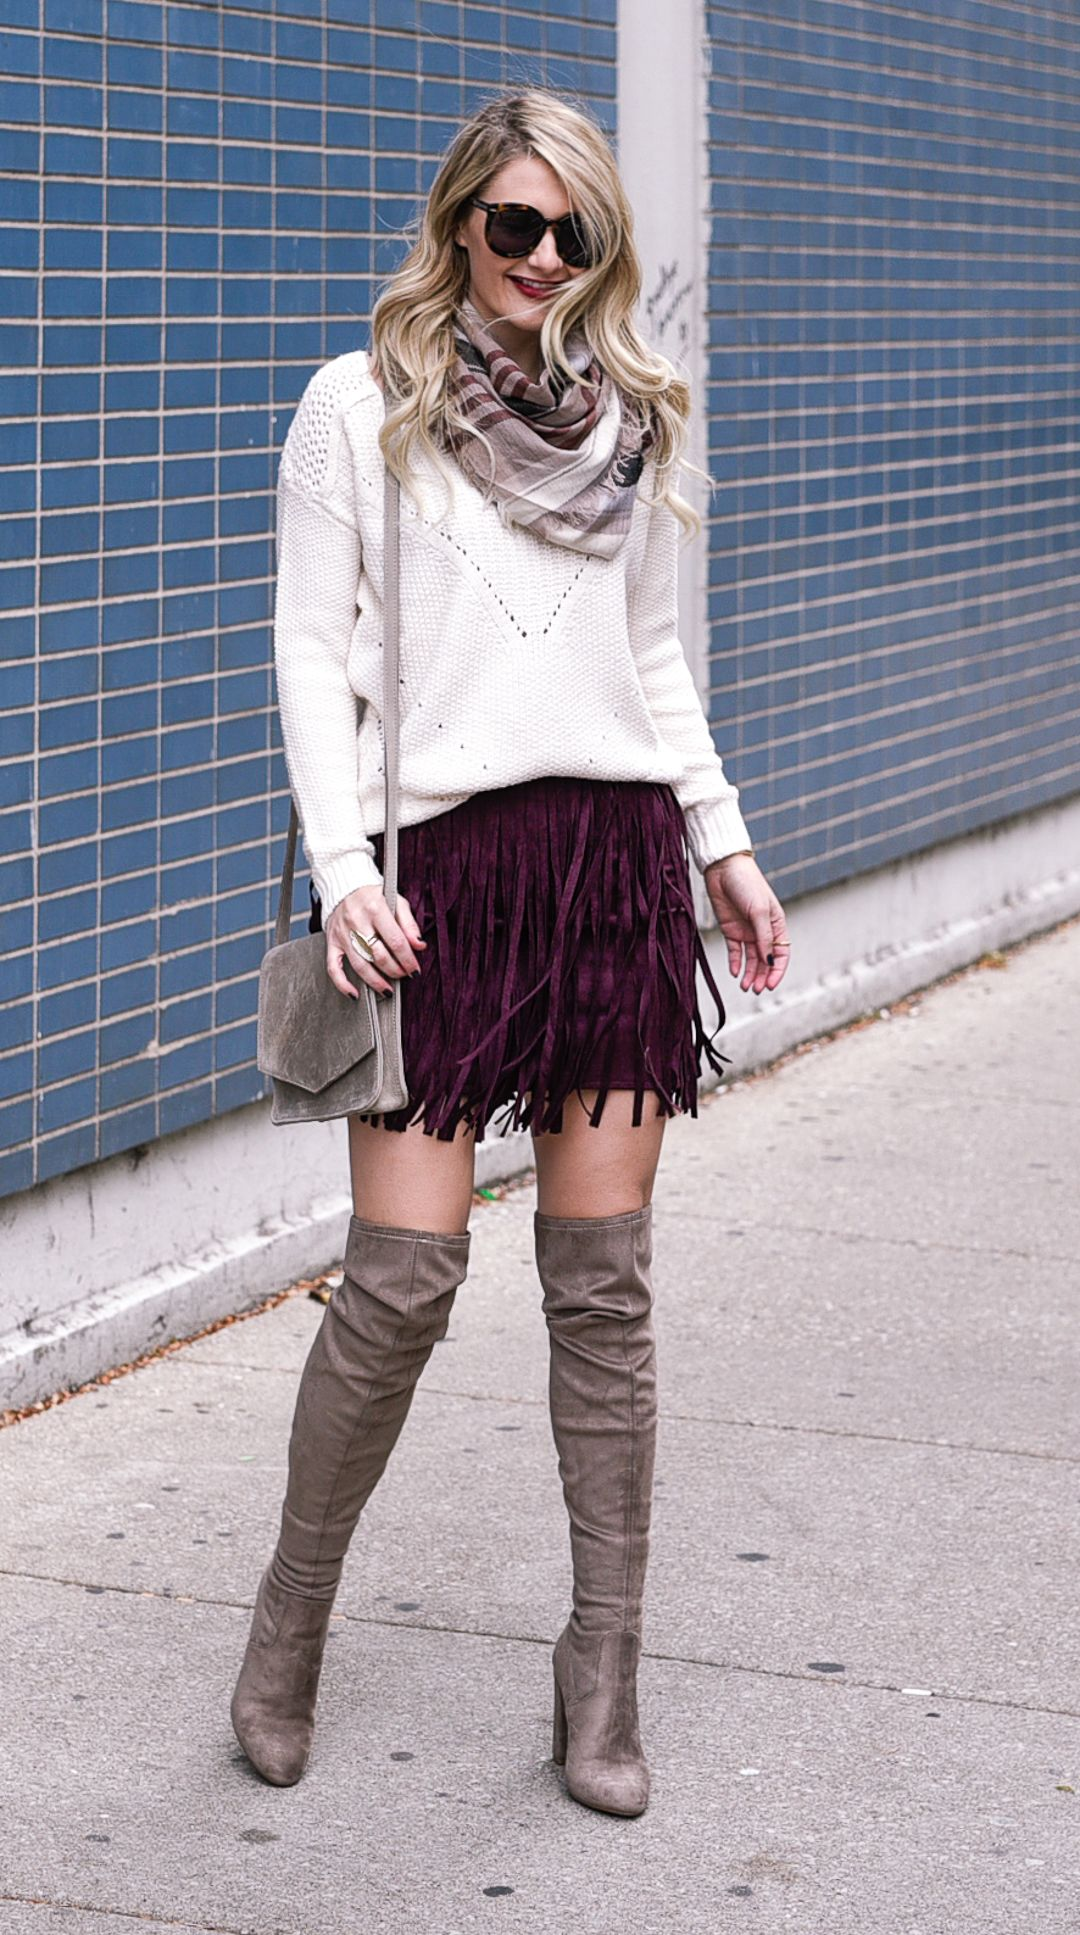 a50361eb7fa Jenna Colgrove wearing suede over the knee boots, a white knit sweater, and  a burgundy fringe skir.t